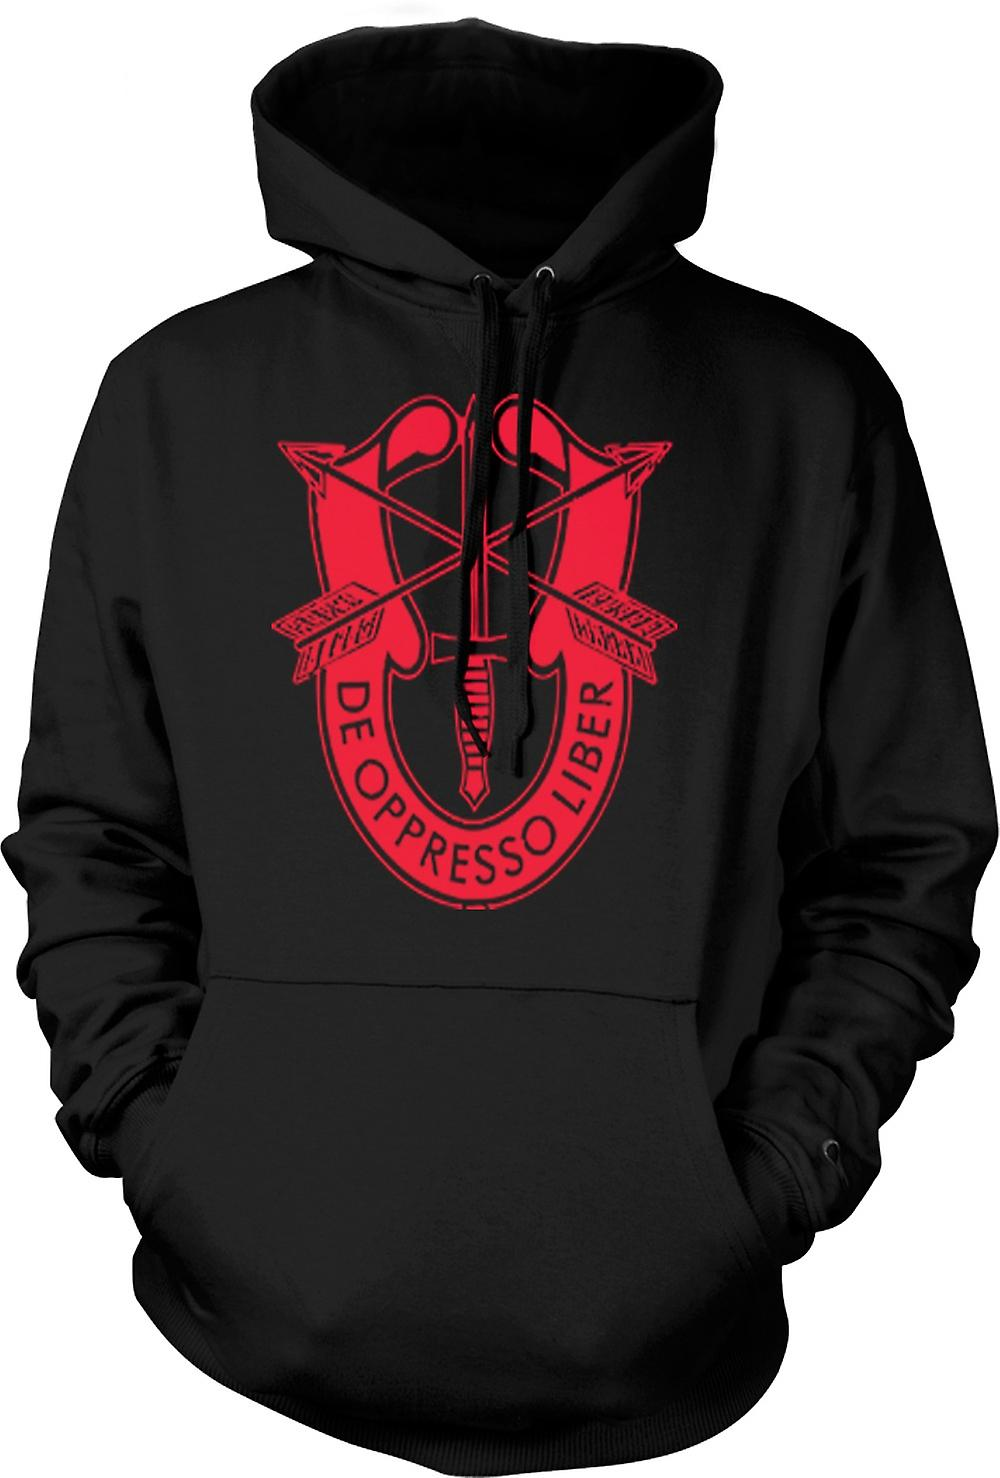 Mens Hoodie - De Oppresso Liber U.S. Special Forces Batch